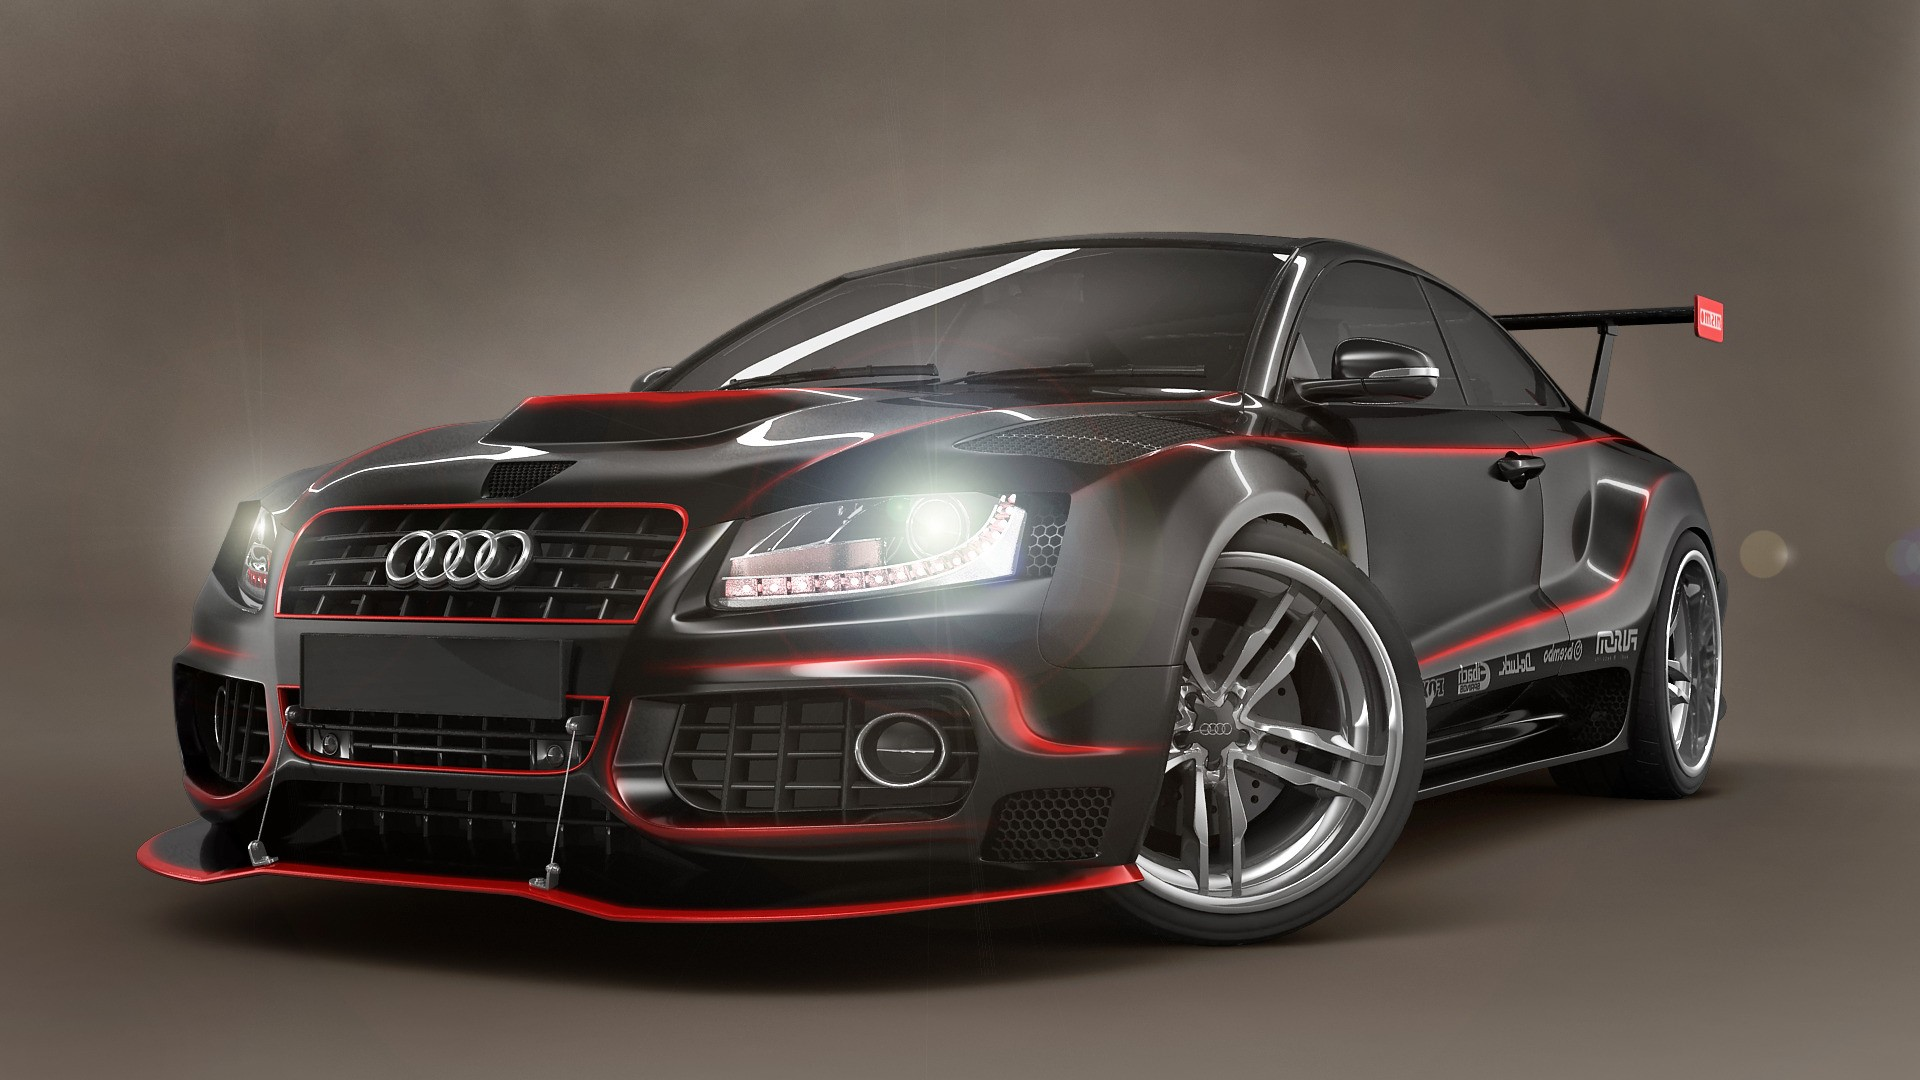 wallpaper car voiture sport ecran audi driver 1920x1080